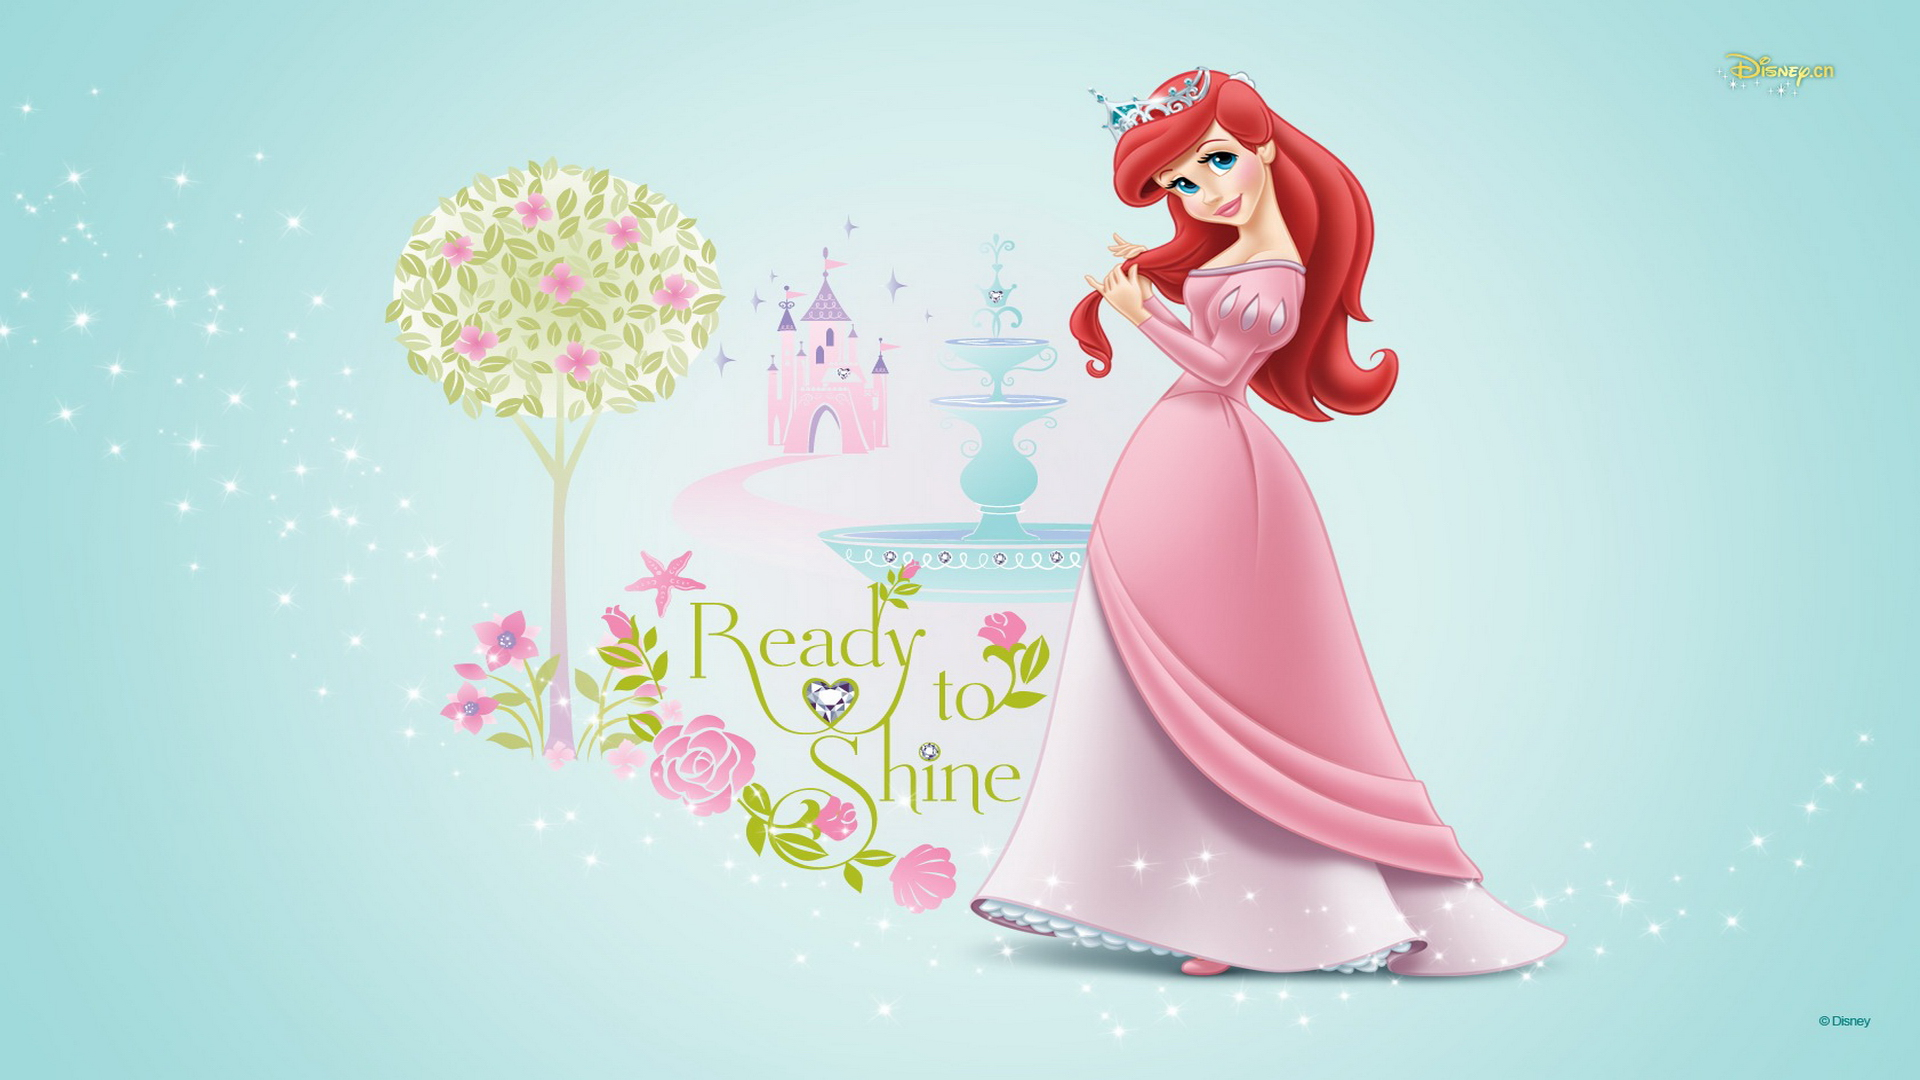 Disney Princess Ariel Purple Dress Wallpaper Foolhardi 1920x1080px